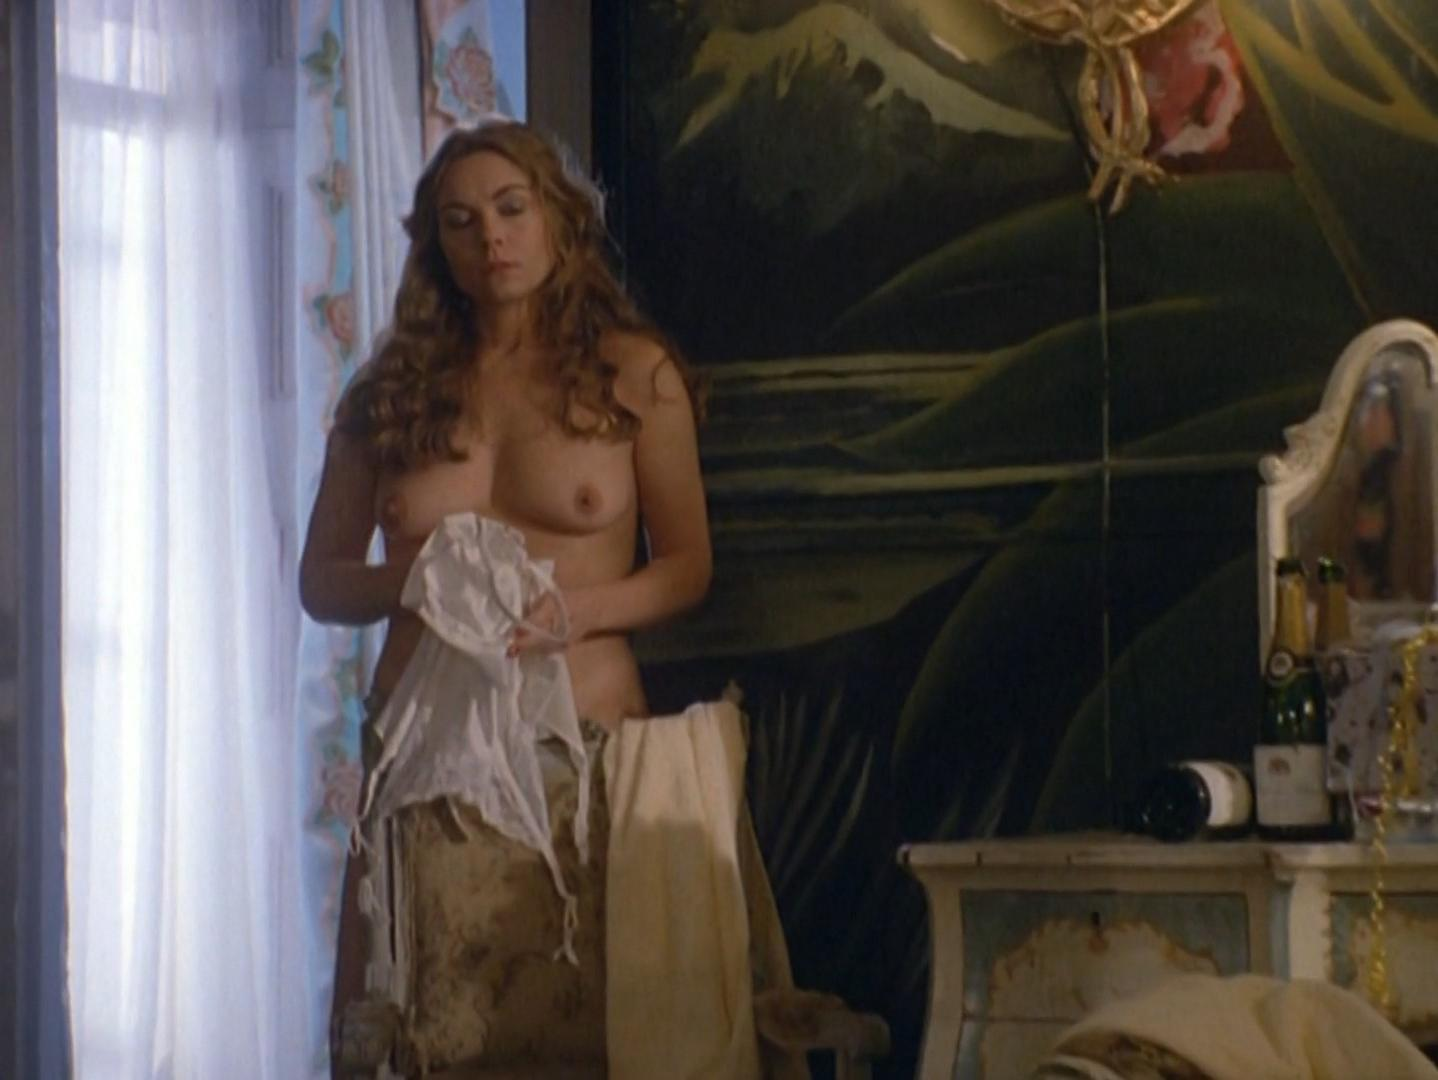 photos russell actress theresa Nude of